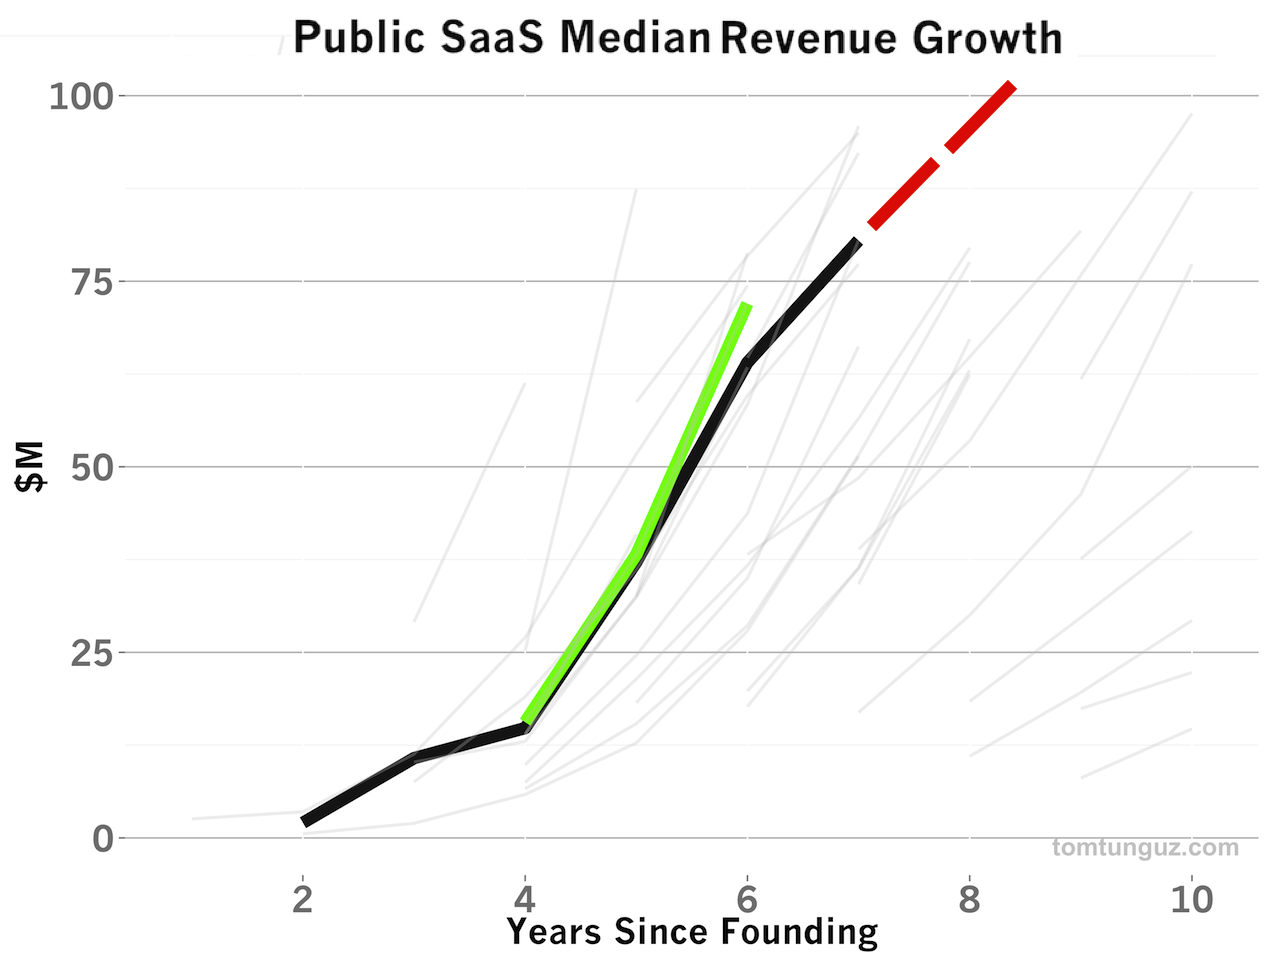 hight resolution of you can also see this growth pattern in reality here is a telling graph of the median saas revenue level pre ipo that i borrowed from tom tunguz